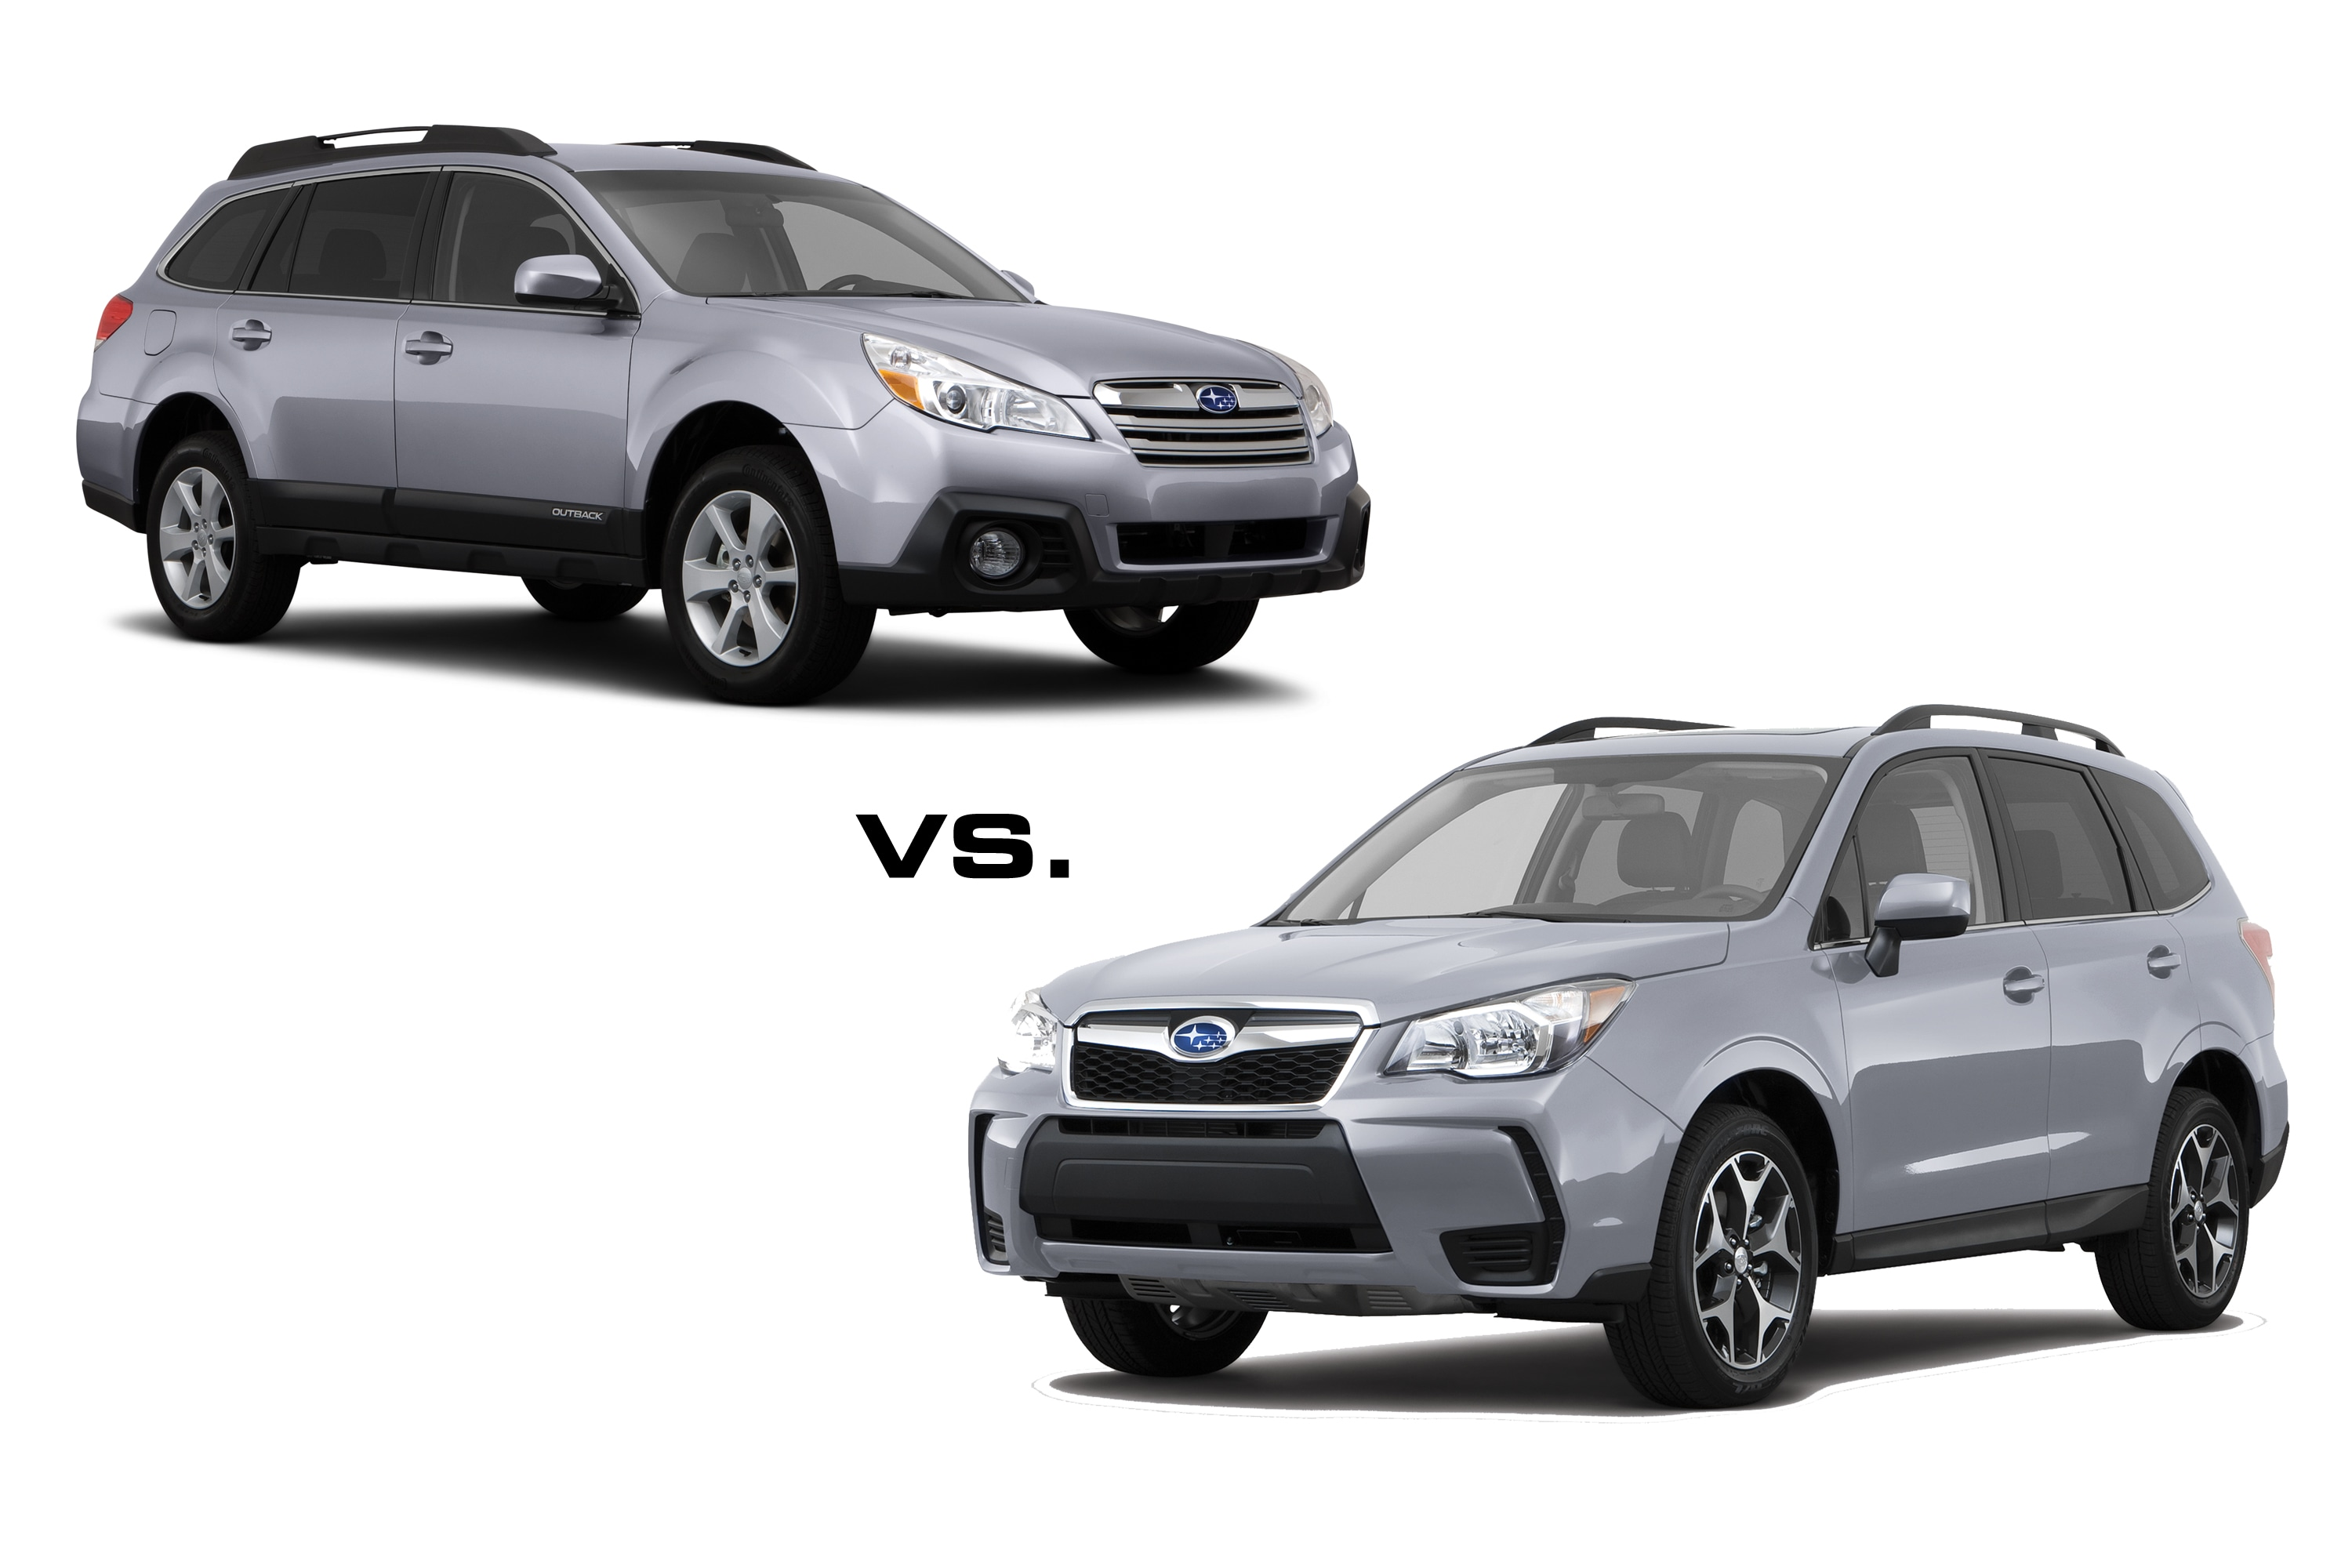 Mark Miller Subaru Utah | Forester vs Outback, Salt lake City, Sandy.